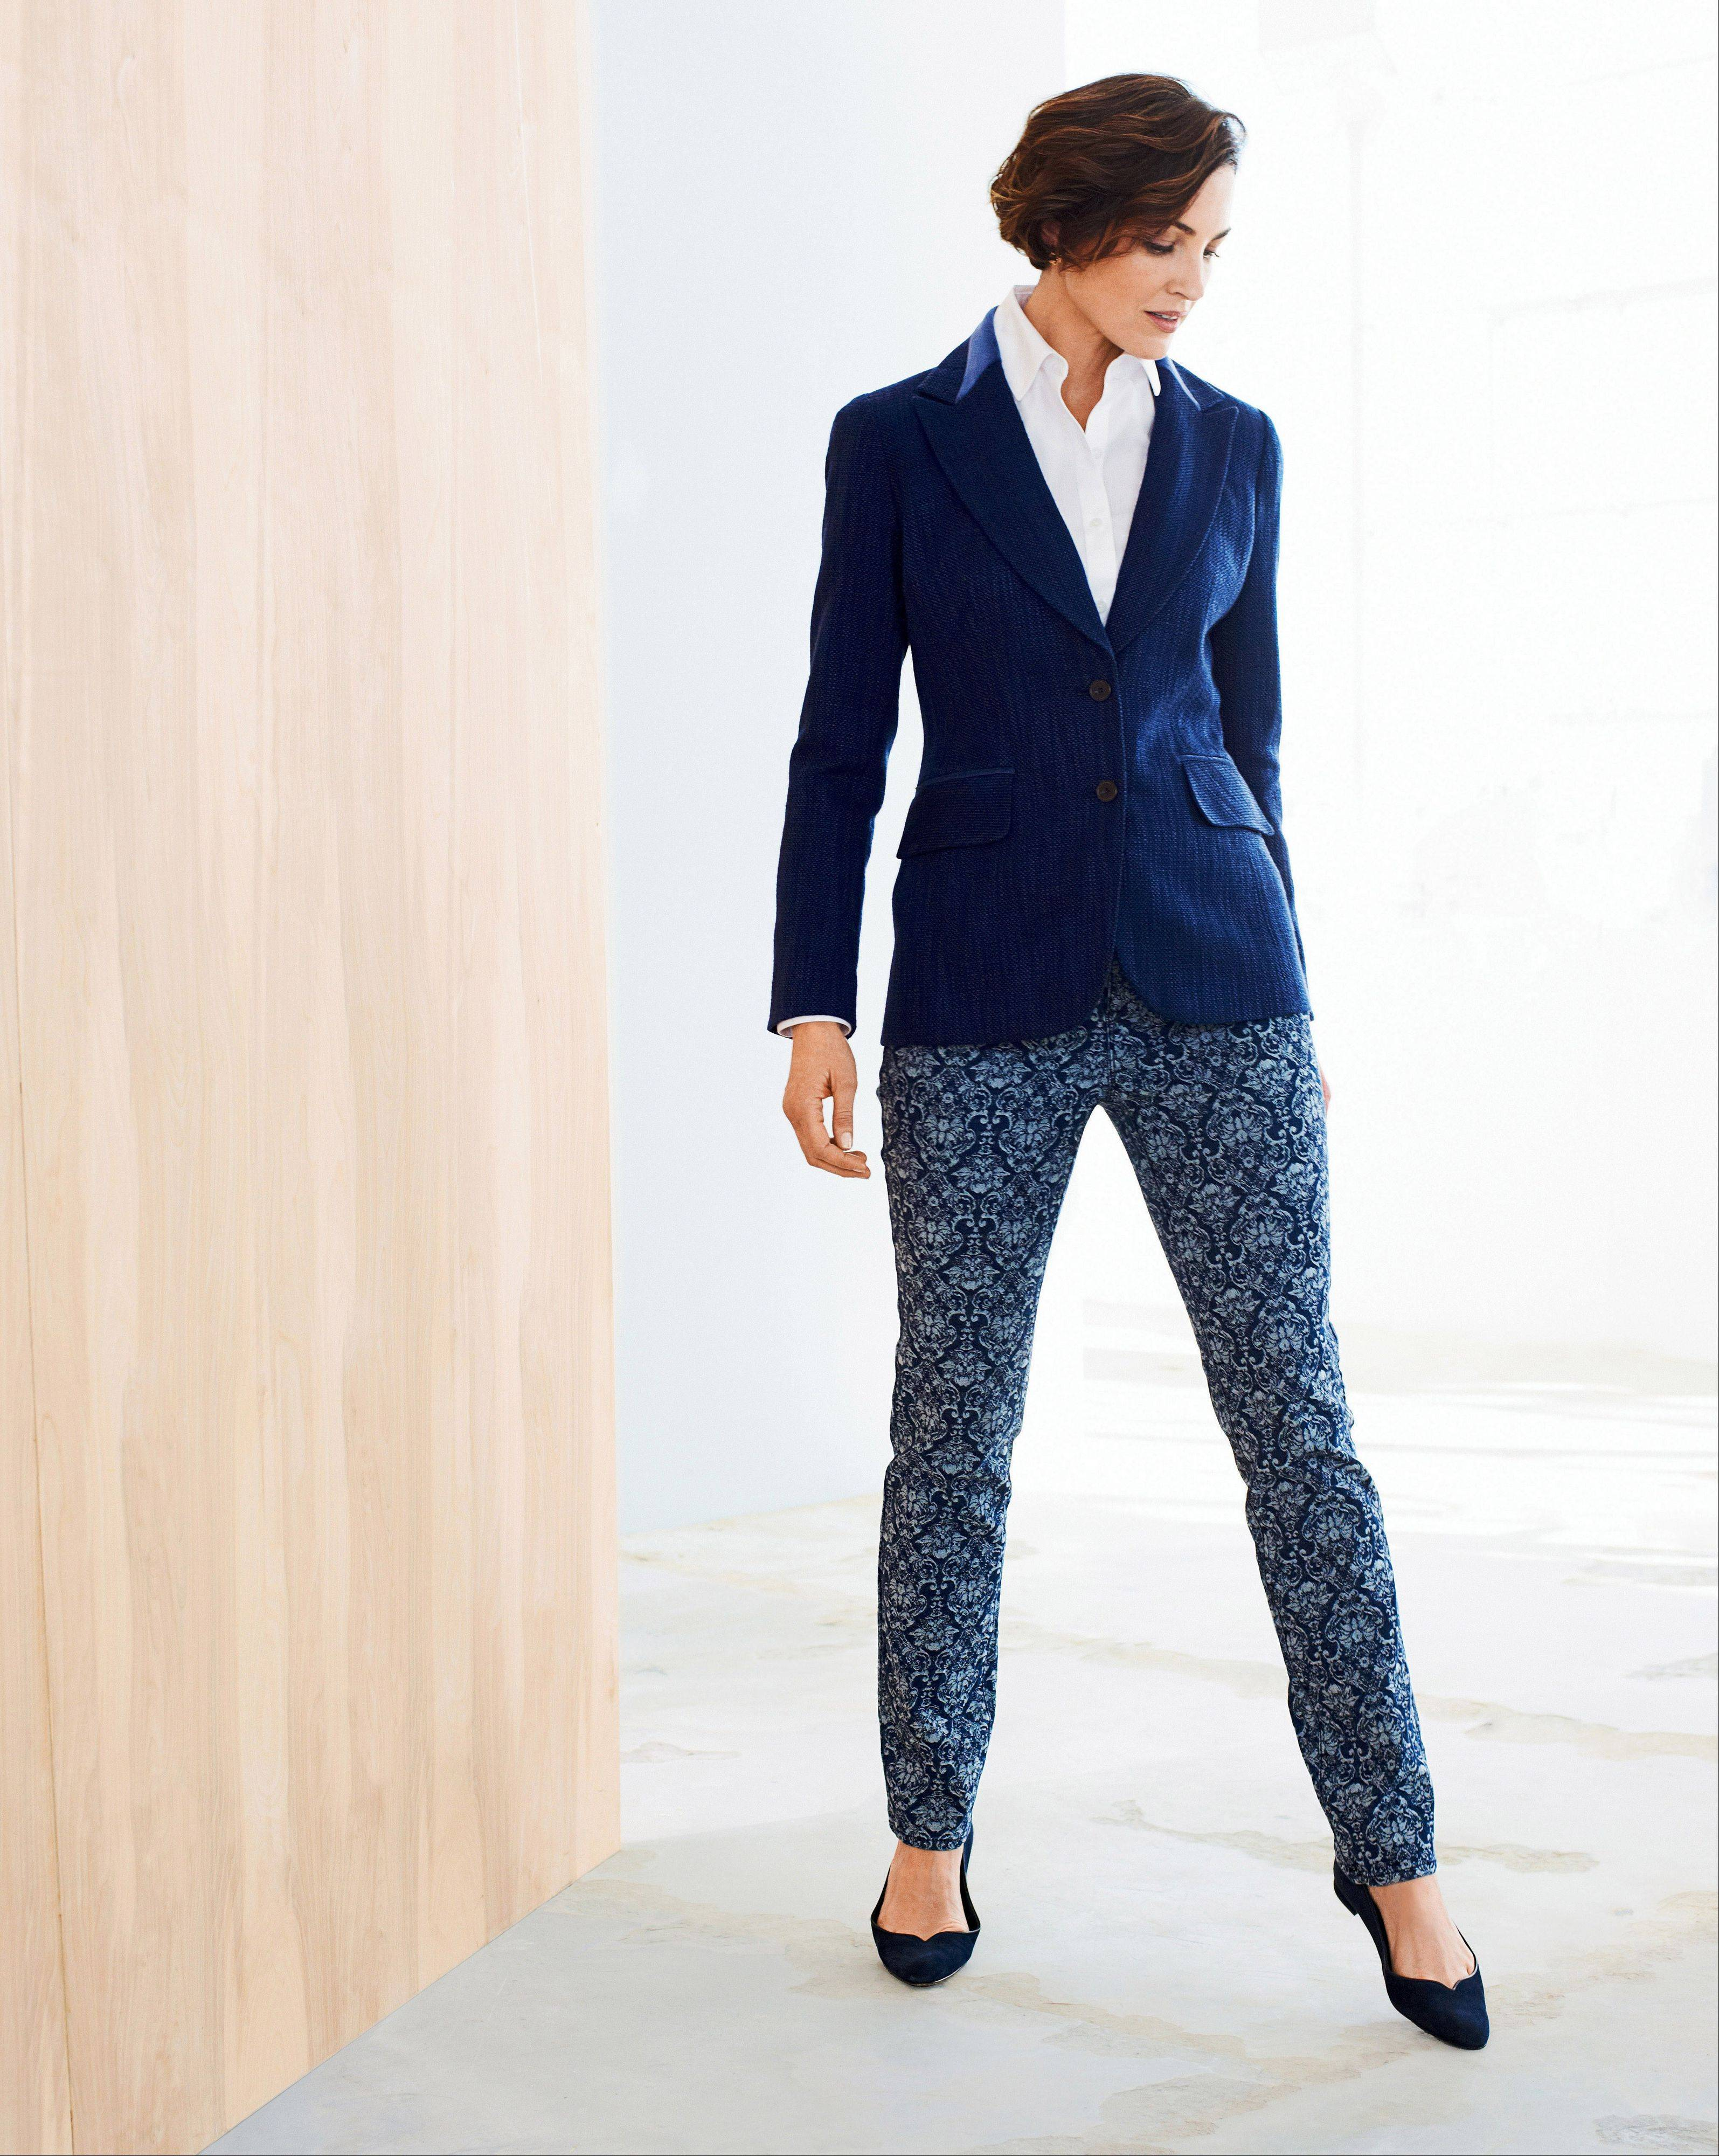 A model wears a No-iron Perfect Shirt plus Atlantic Tweed jacket and indigo jacquard slim leg jeans. Celebrity stylist Cristina Ehrlich, a style adviser to Coldwater Creek, says layers are the way to go as long as the overall look is relaxed look without being sloppy.